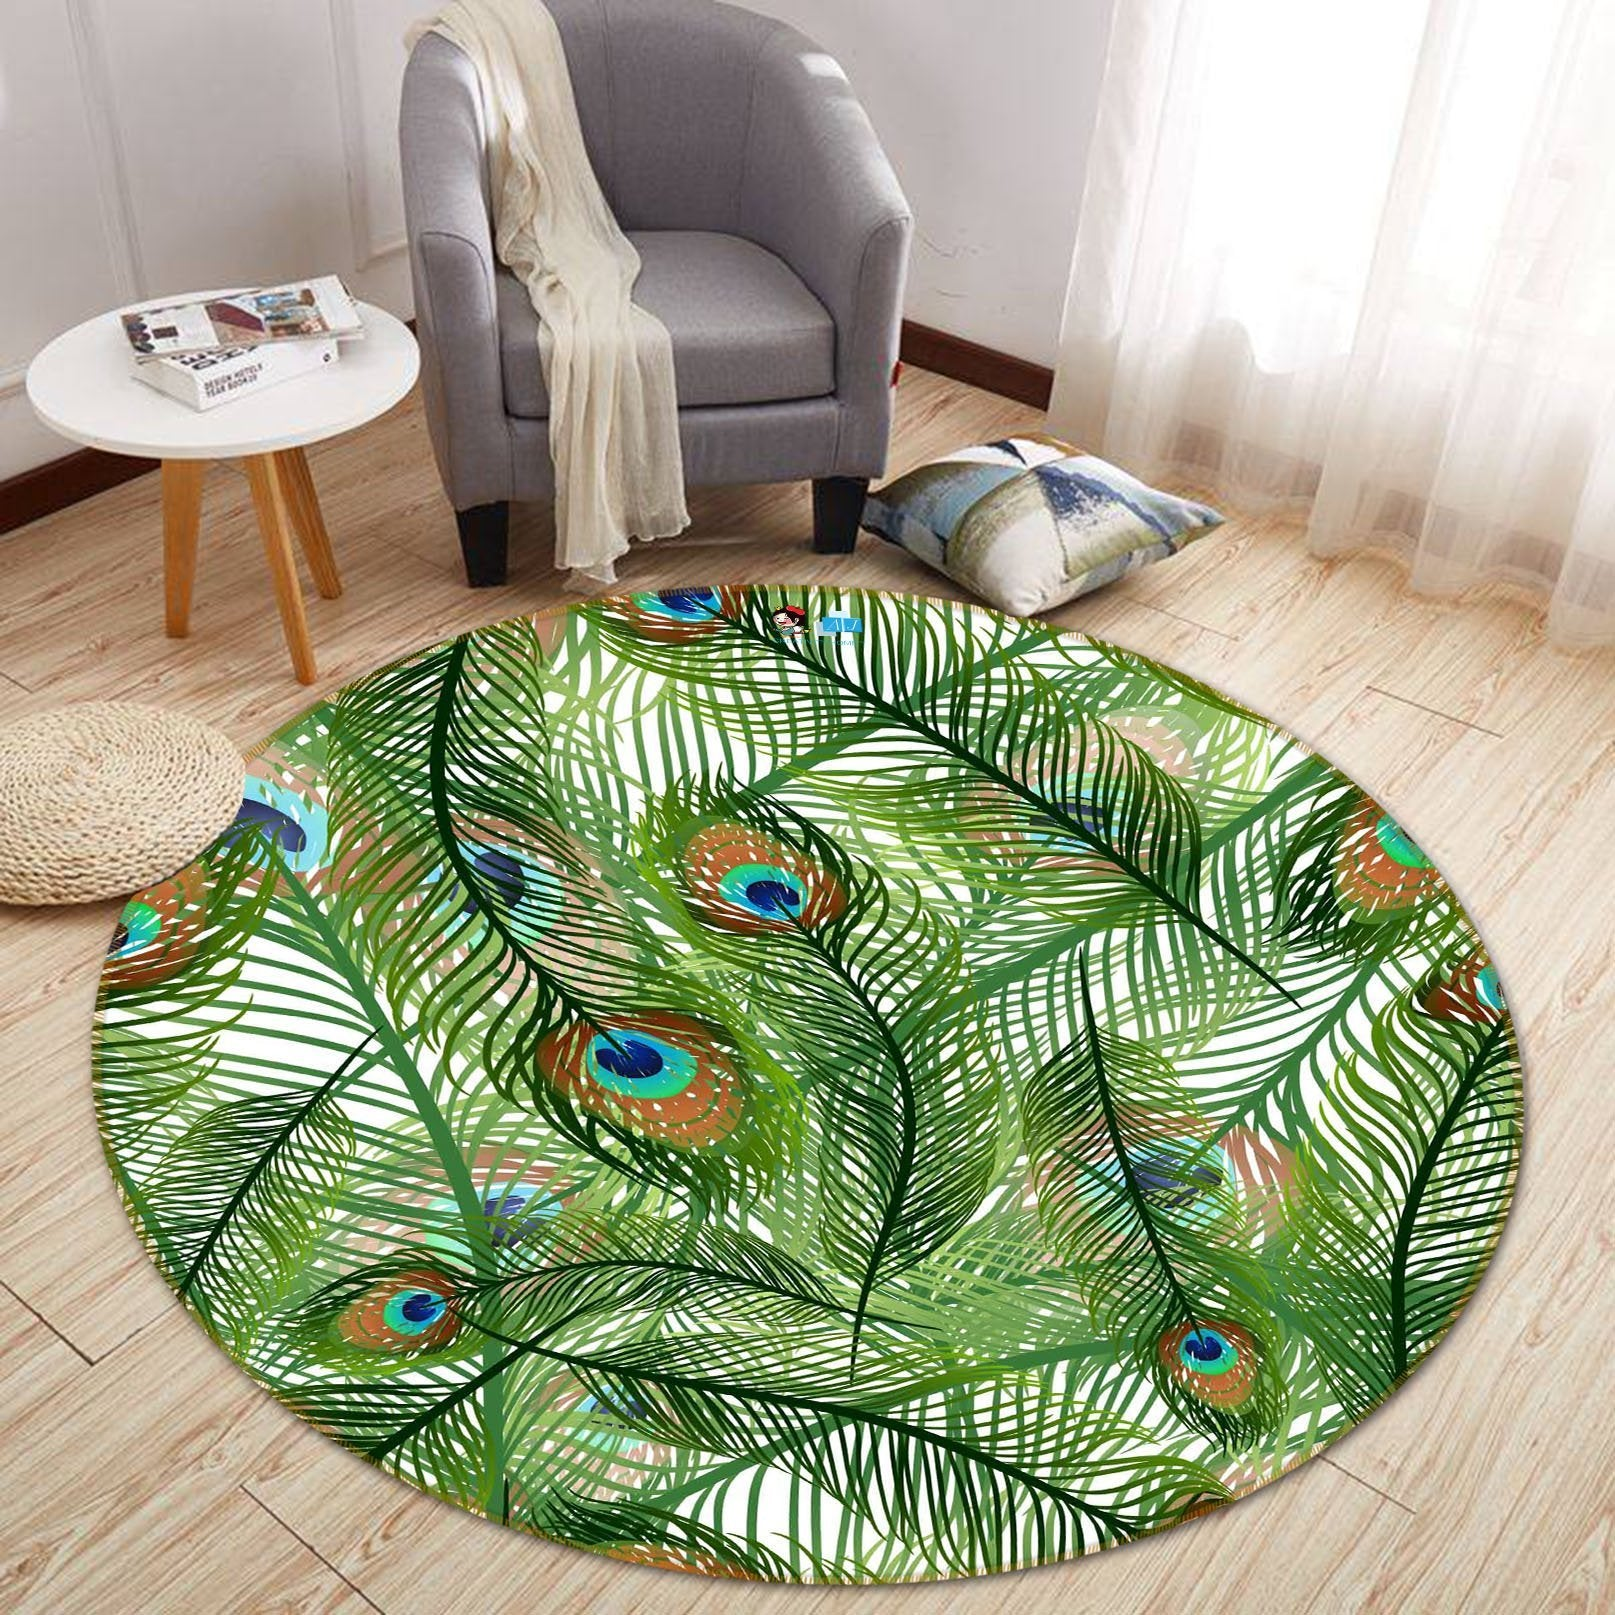 3D Peacock Feather 245 Round Non Slip Rug Mat Mat AJ Creativity Home